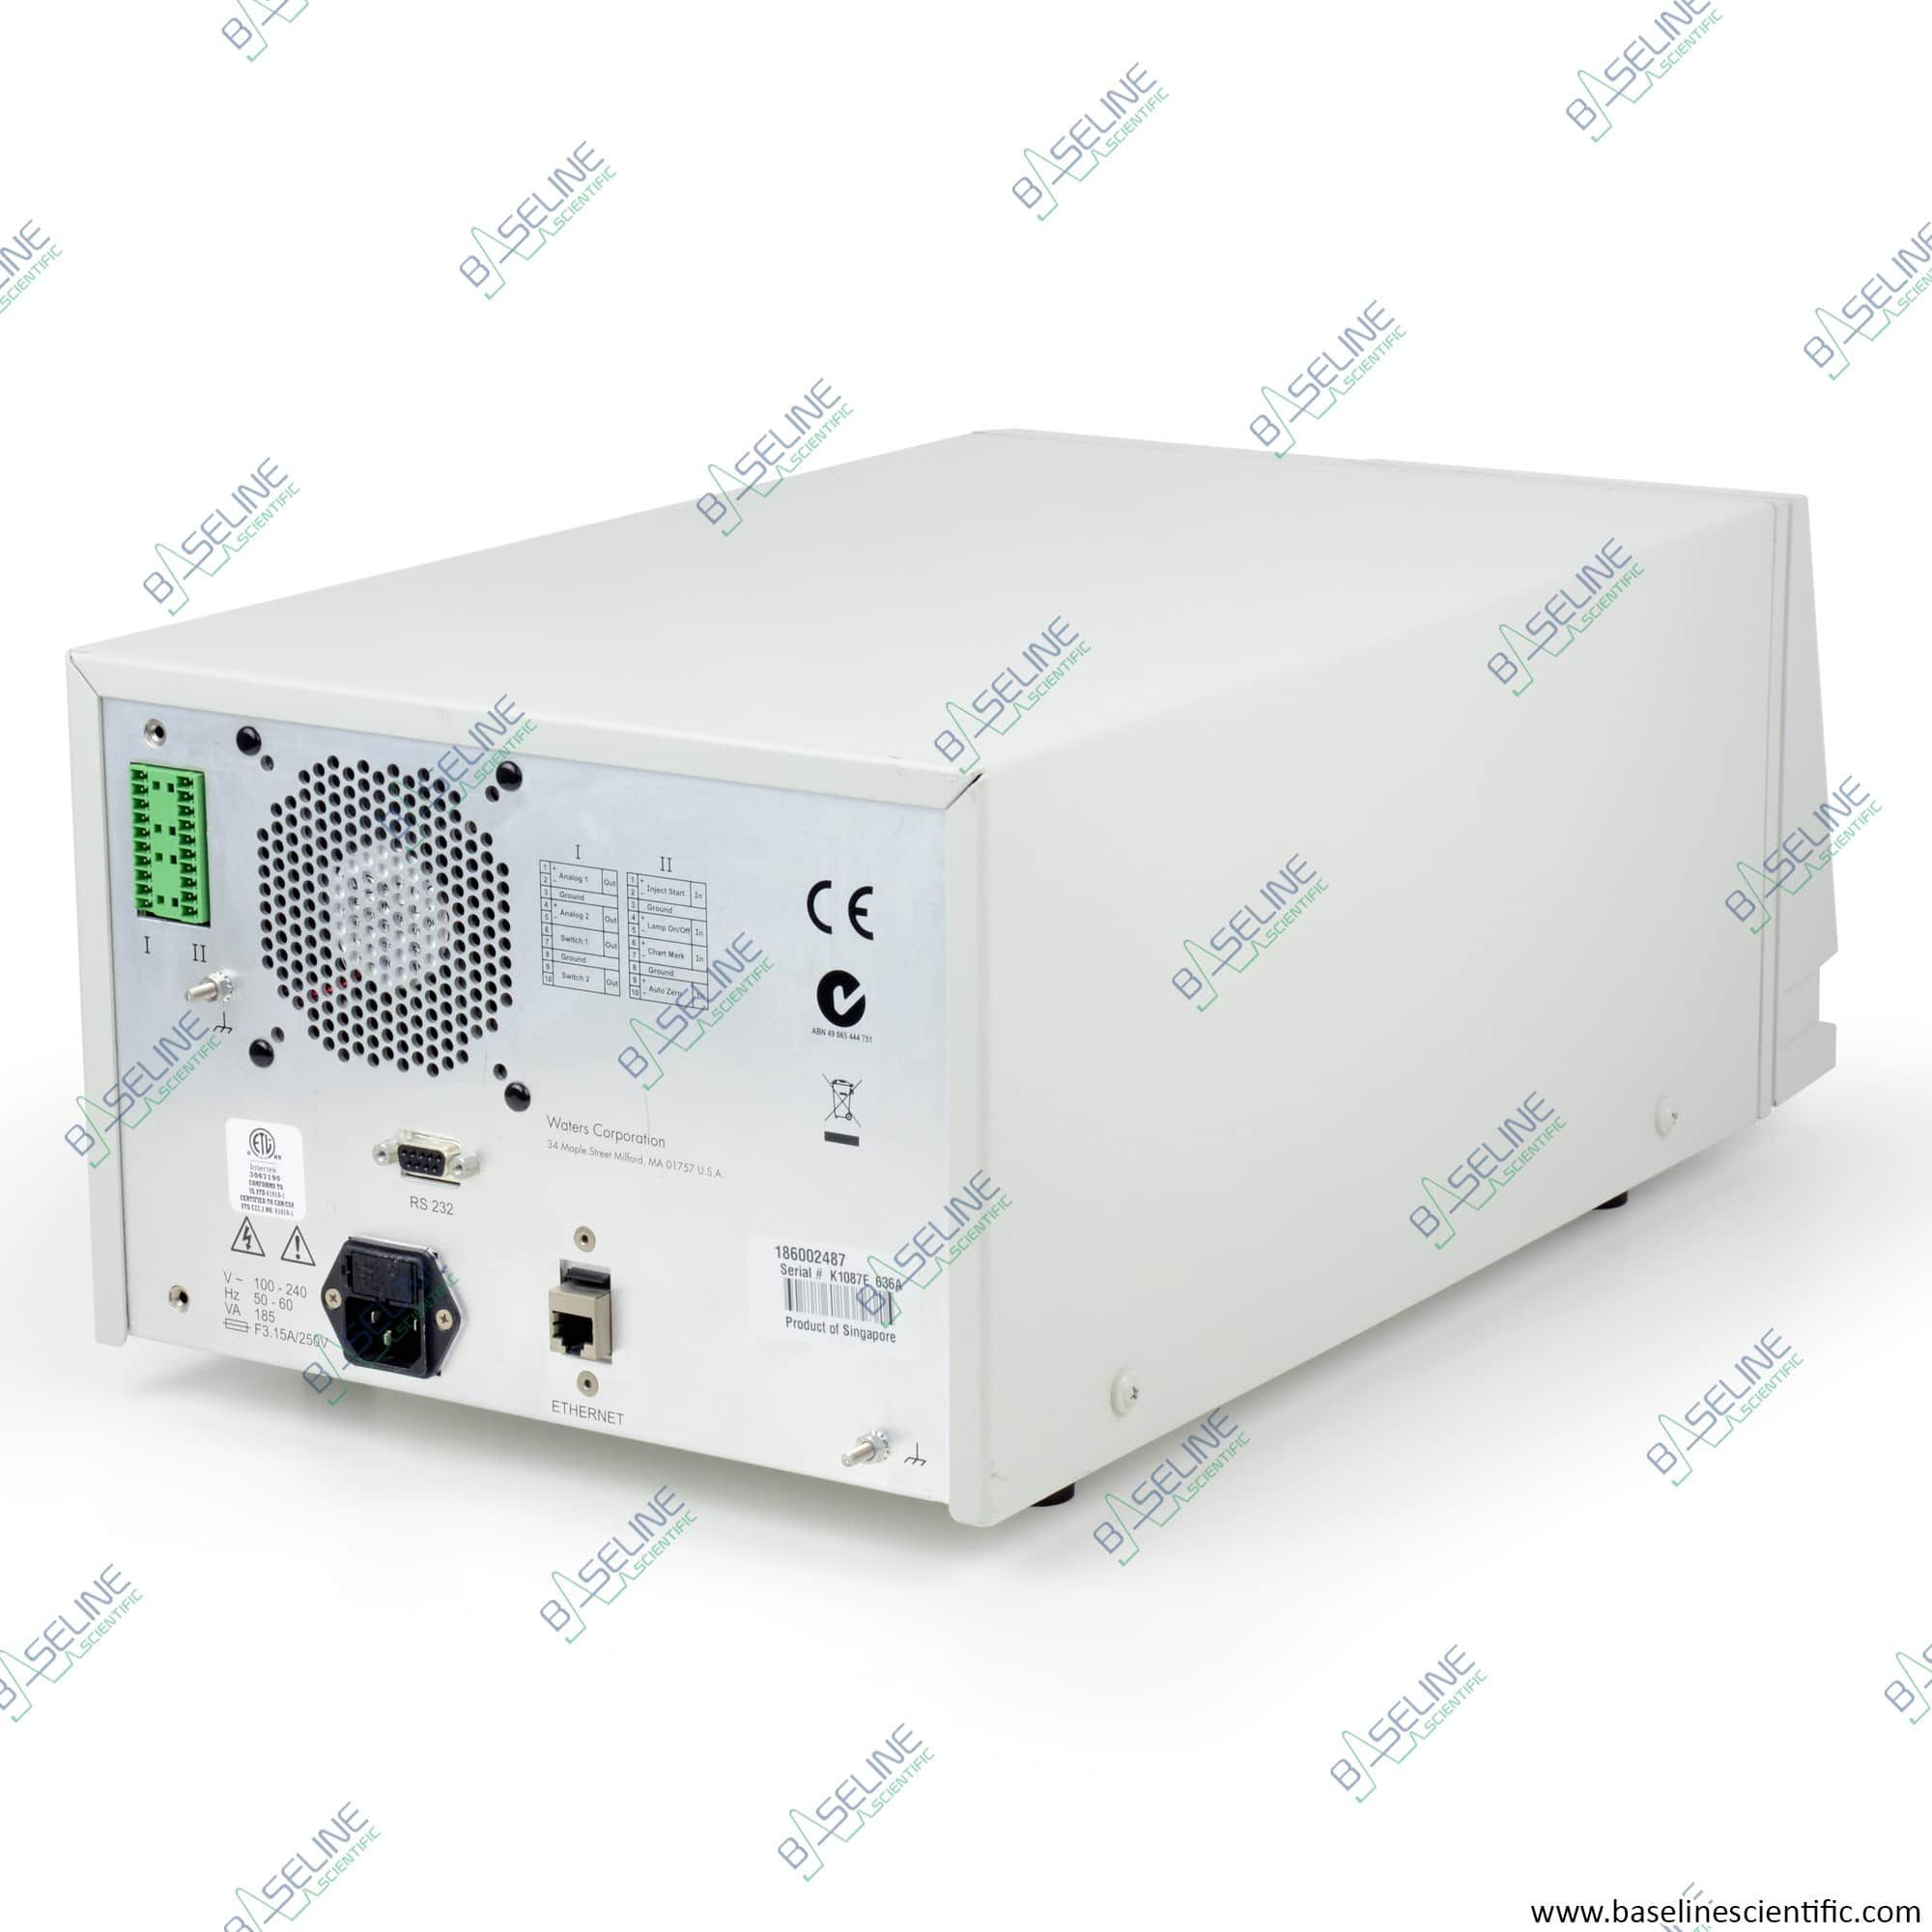 Refurbished Waters Alliance 2695 with 2489 UV/Visible Detector and ONE YEAR WARRANTY